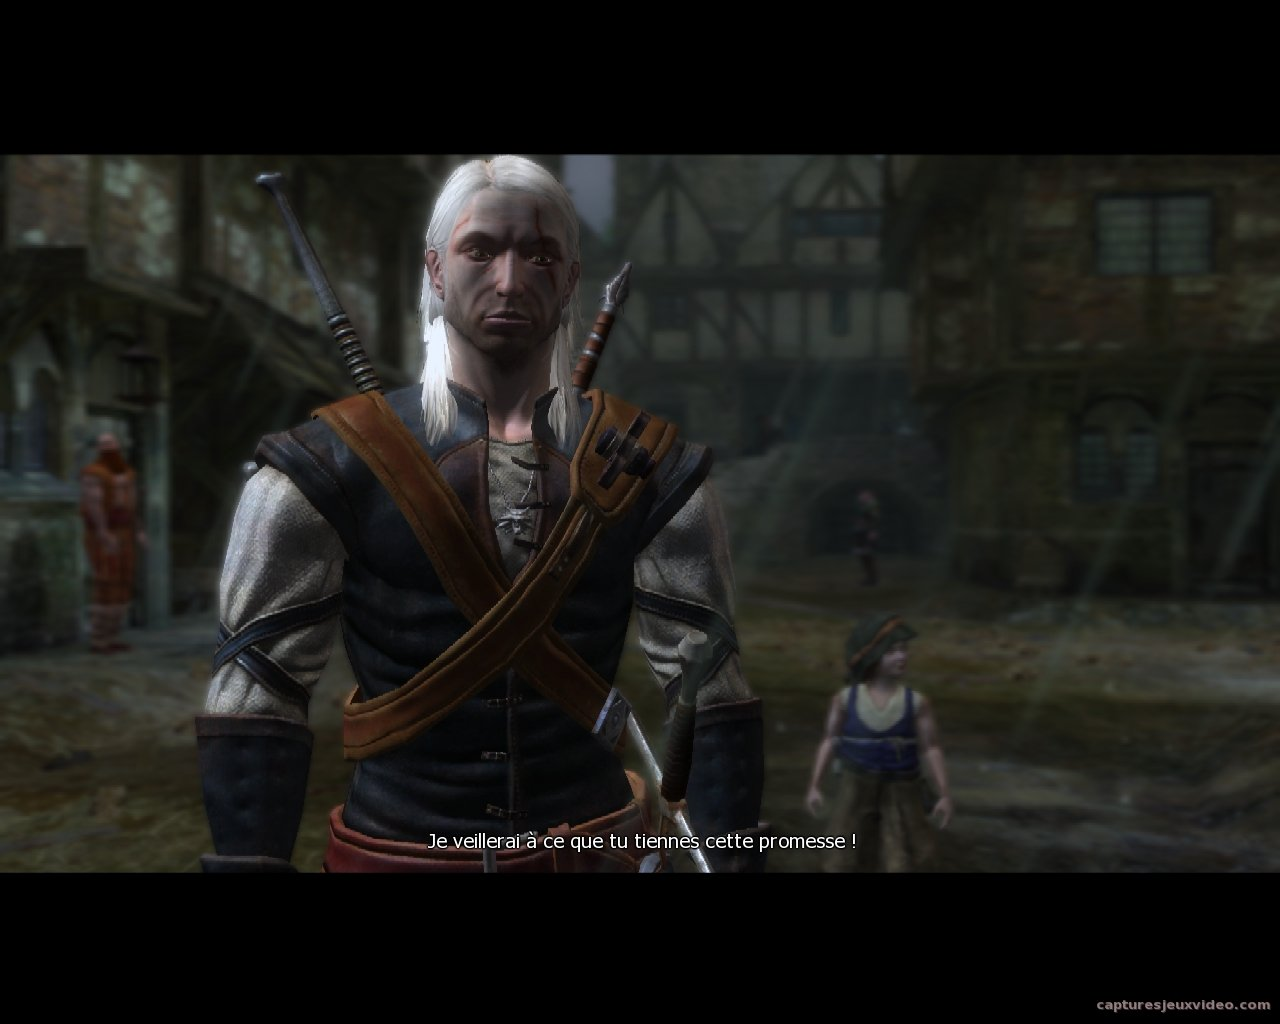 Geralt de Riv - The Witcher capture image